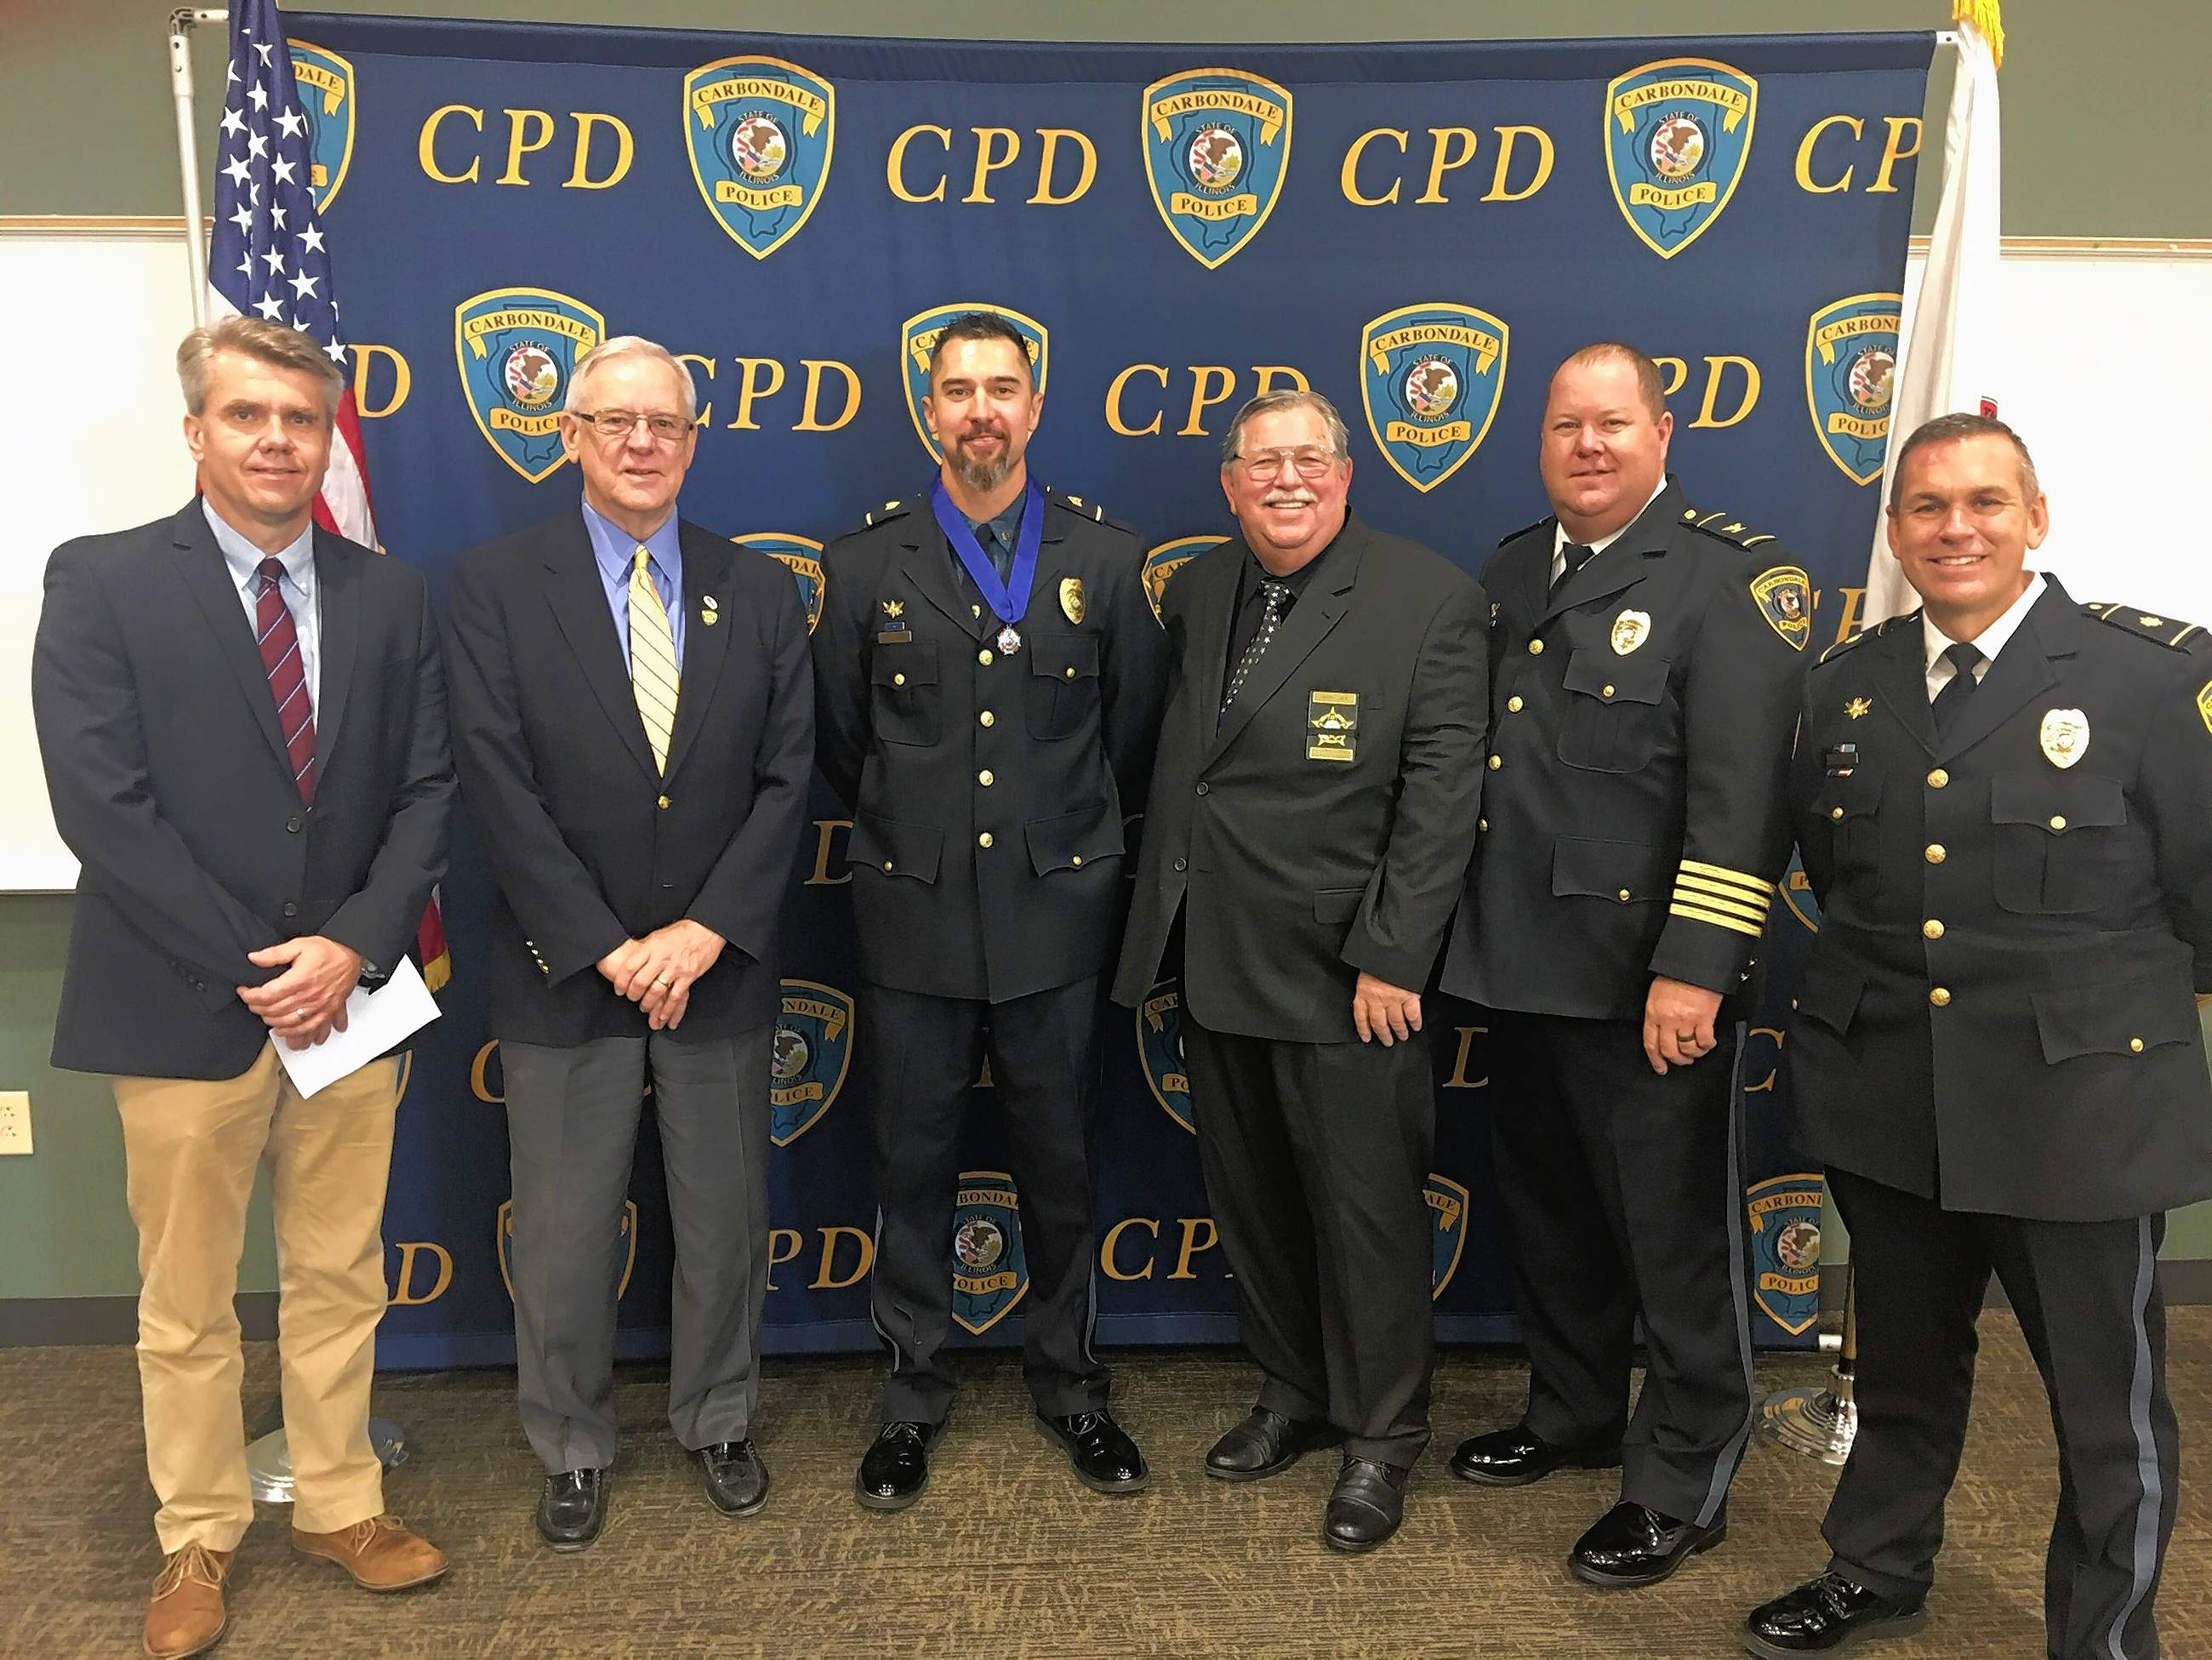 From left, Carbondale City Manager Gary Williams, Mayor Mike Henry, Sgt. Guy Draper, FOP awards chair Jerry Lieb, Police Chief Jeff Grubbs and Deputy Chief Stan Reno.